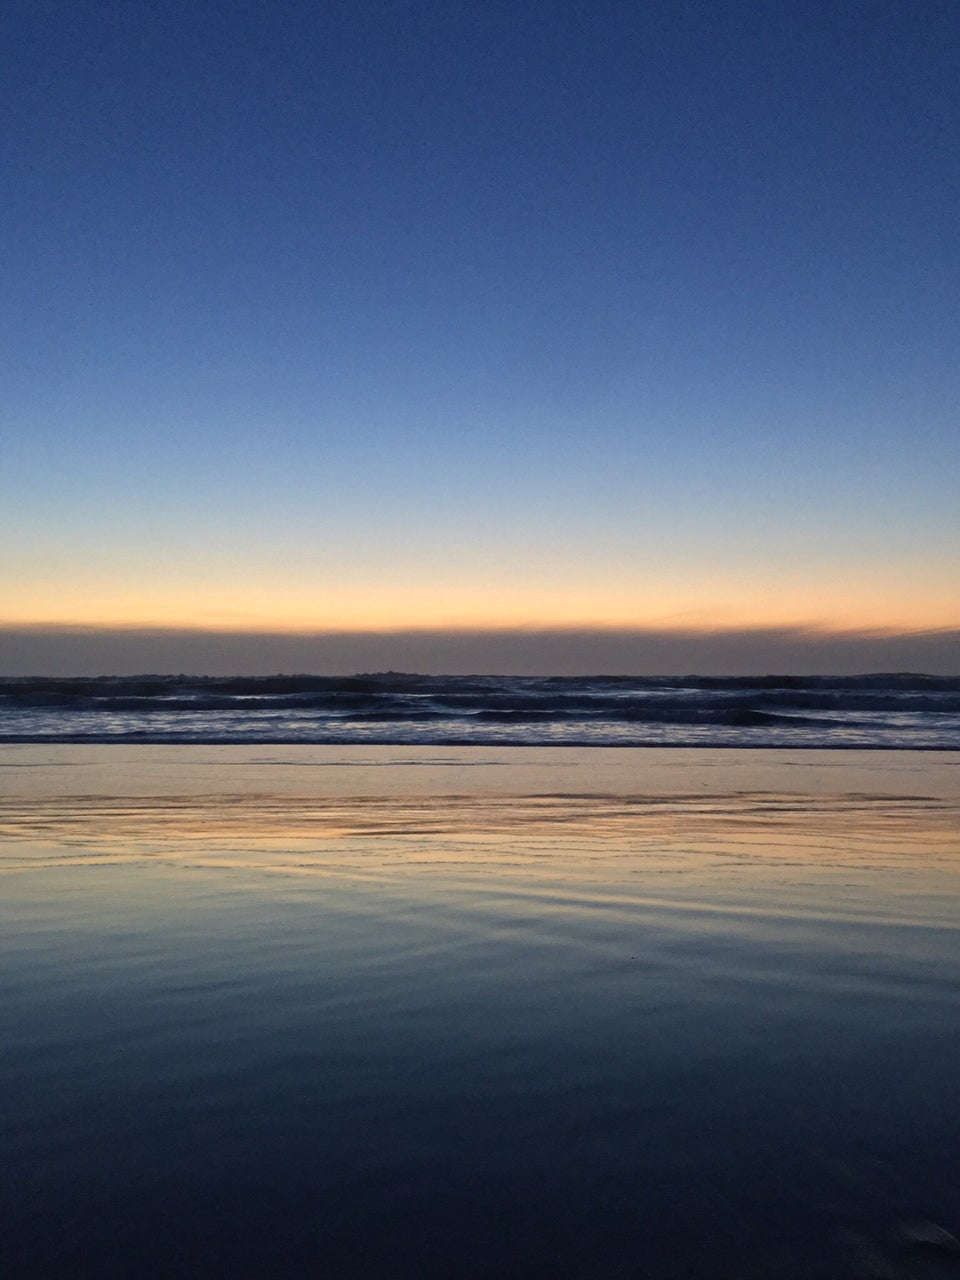 Medium to light blue gradient of sky above an orange glowing horizon over low clouds, waves crashing below them, wet sand reflecting the orange glow and blue sky.